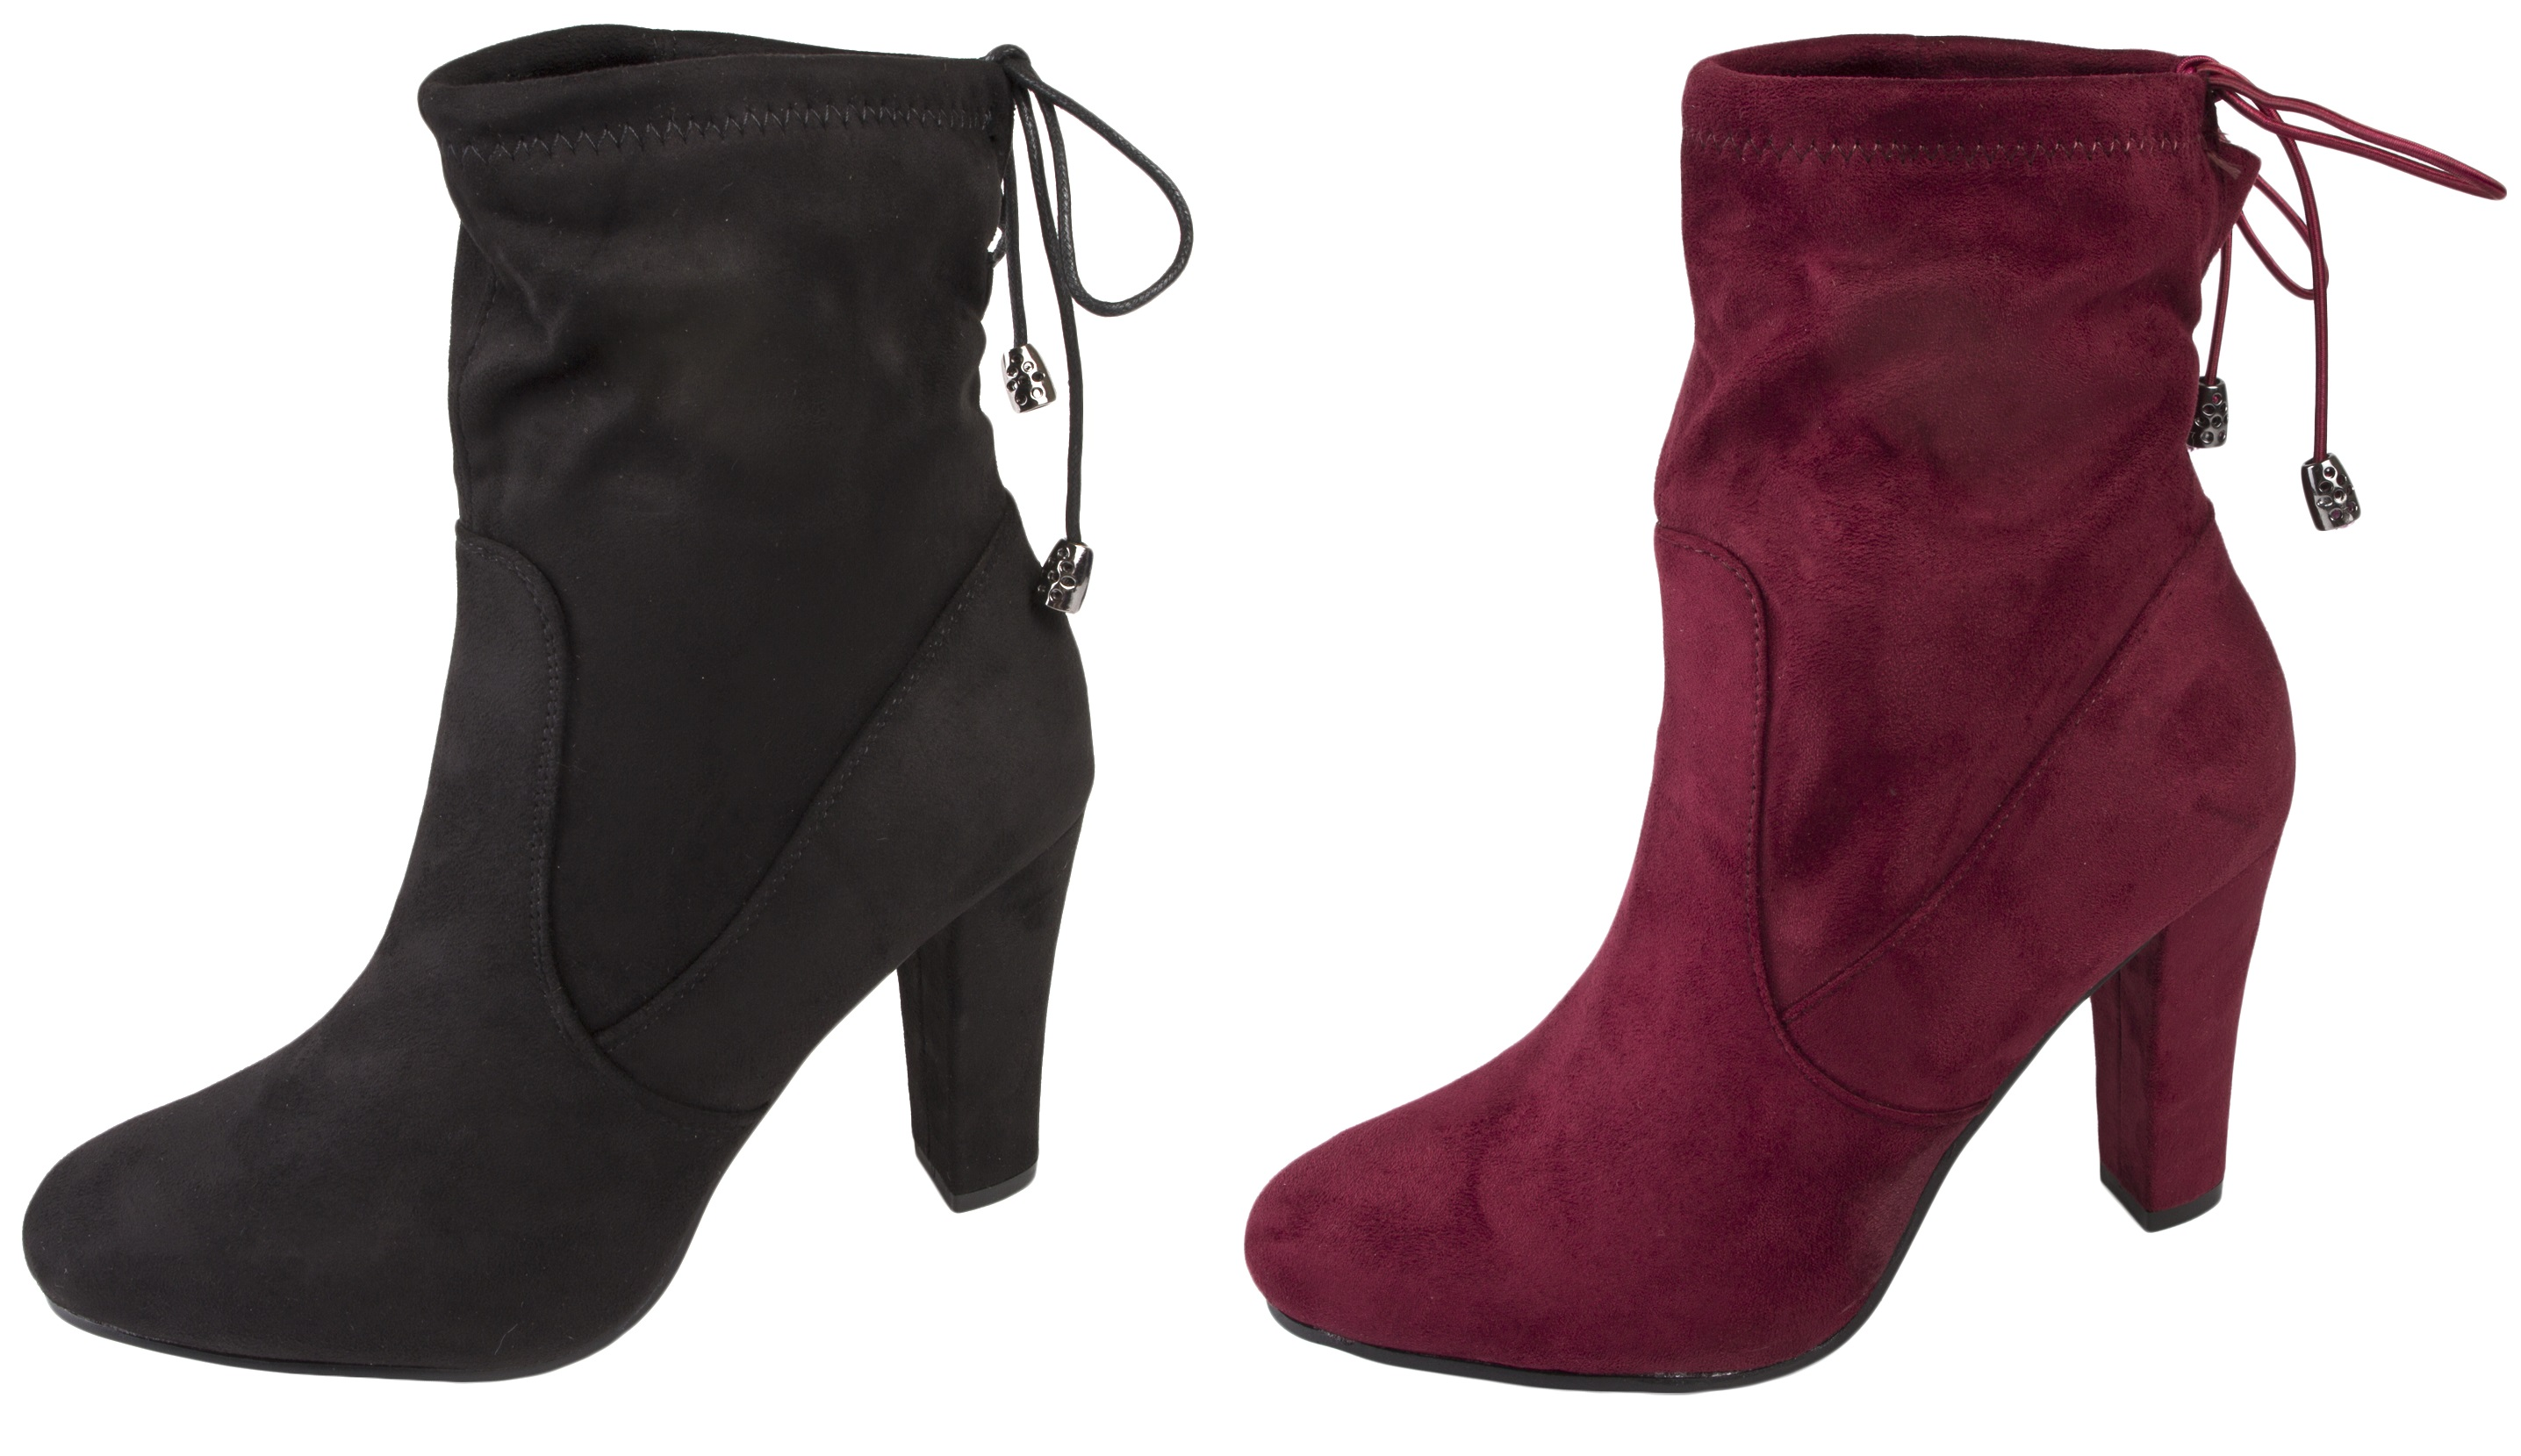 61727274a6ea Womens High Heel Ankle Boots Adjustable Tie Top Faux Suede Leather Ladies  Size